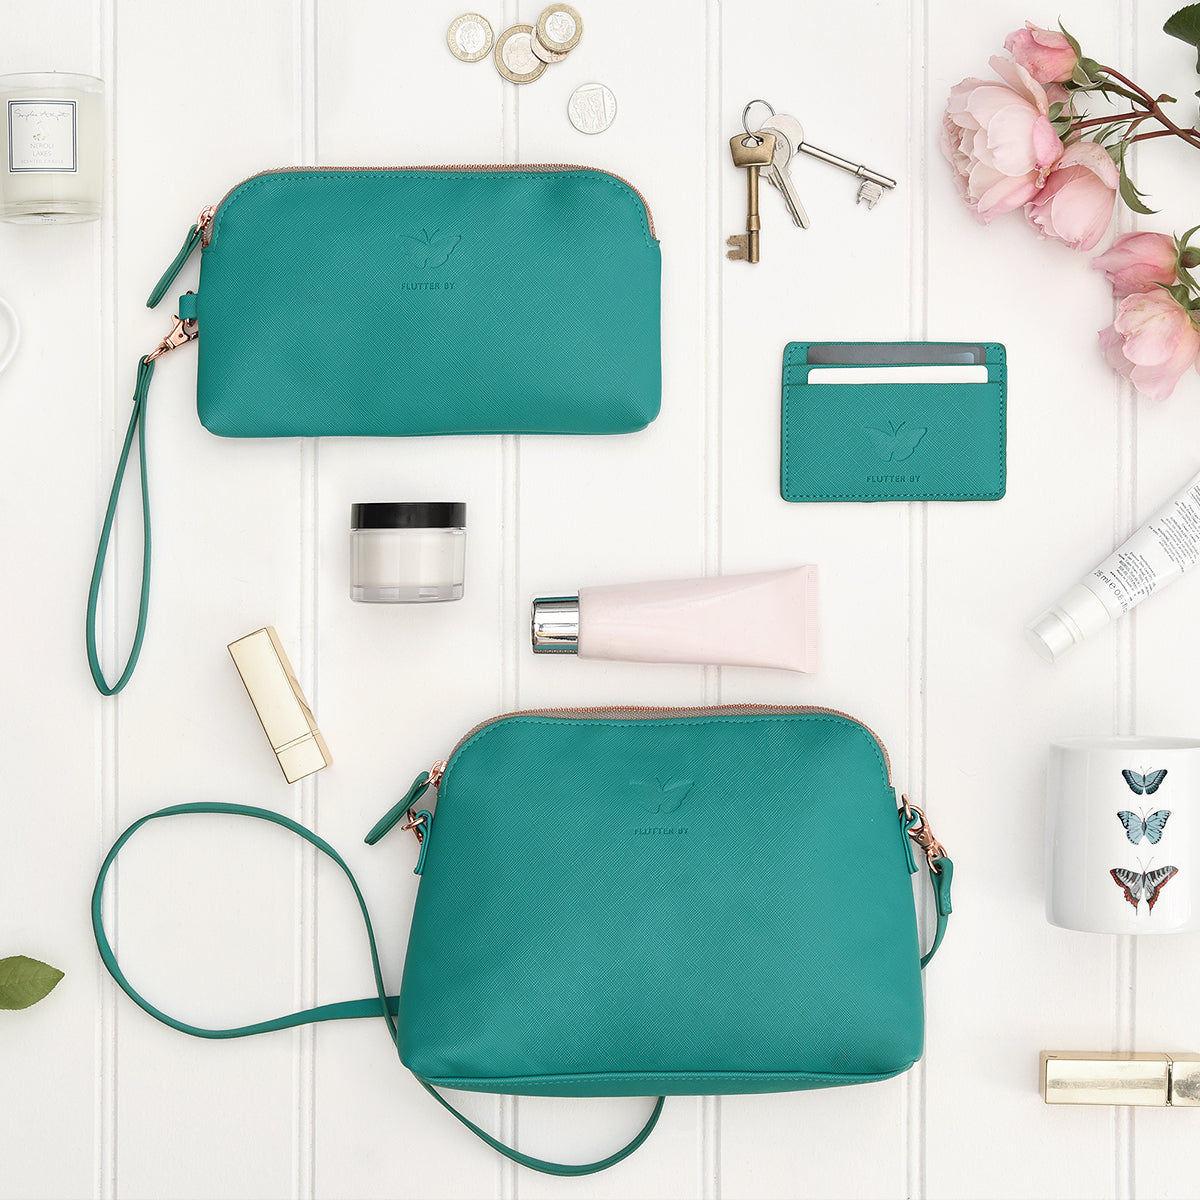 Teal butterflies oversized wallet by Sophie Allport.